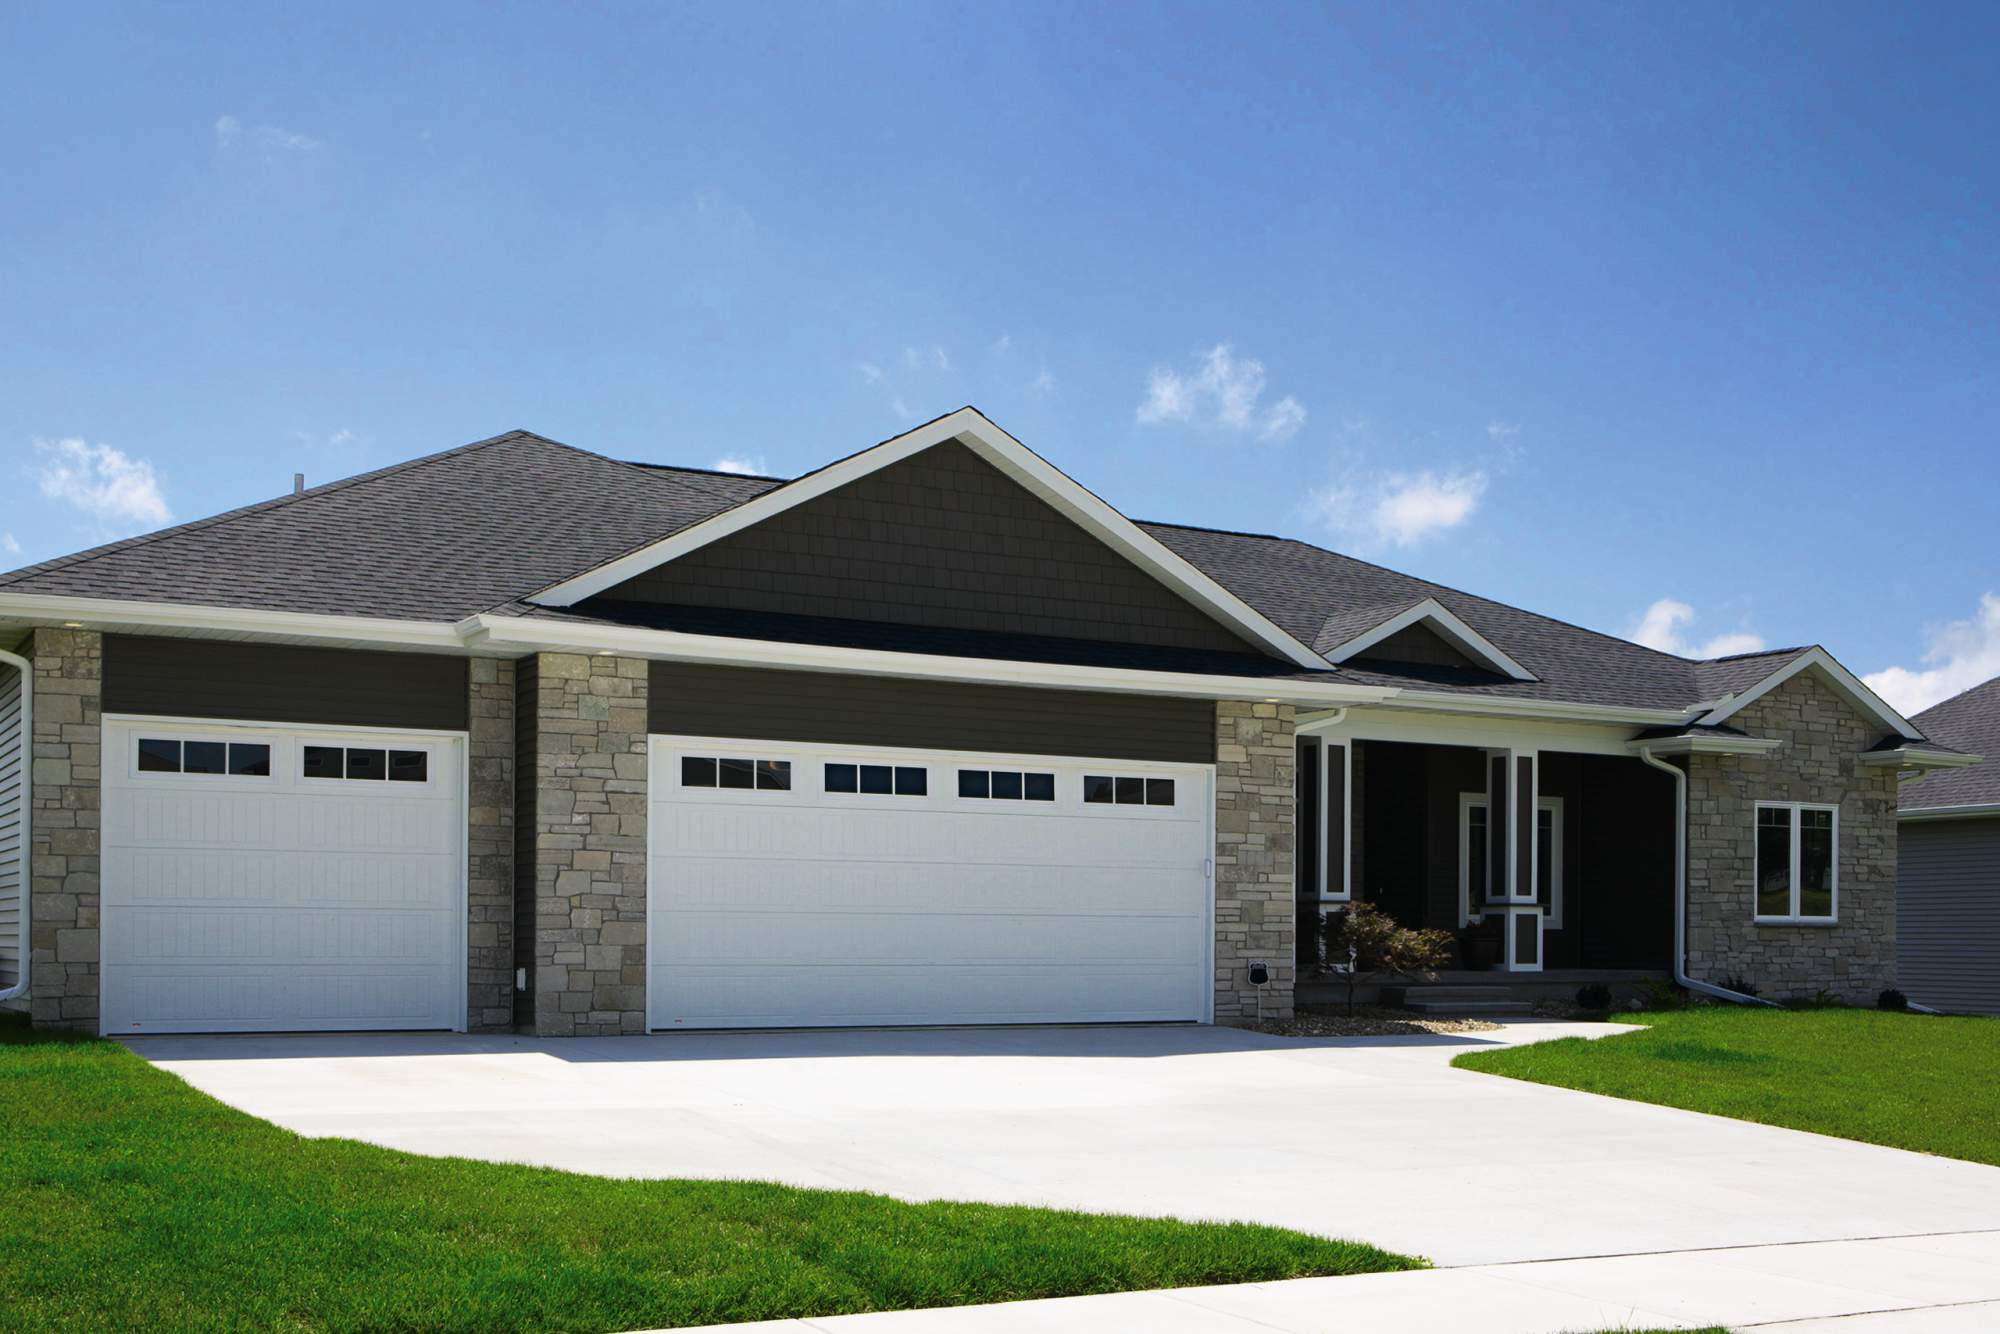 Garage Doors Knoxville Thermacore Insulated Garage Doors Overhead Door Company